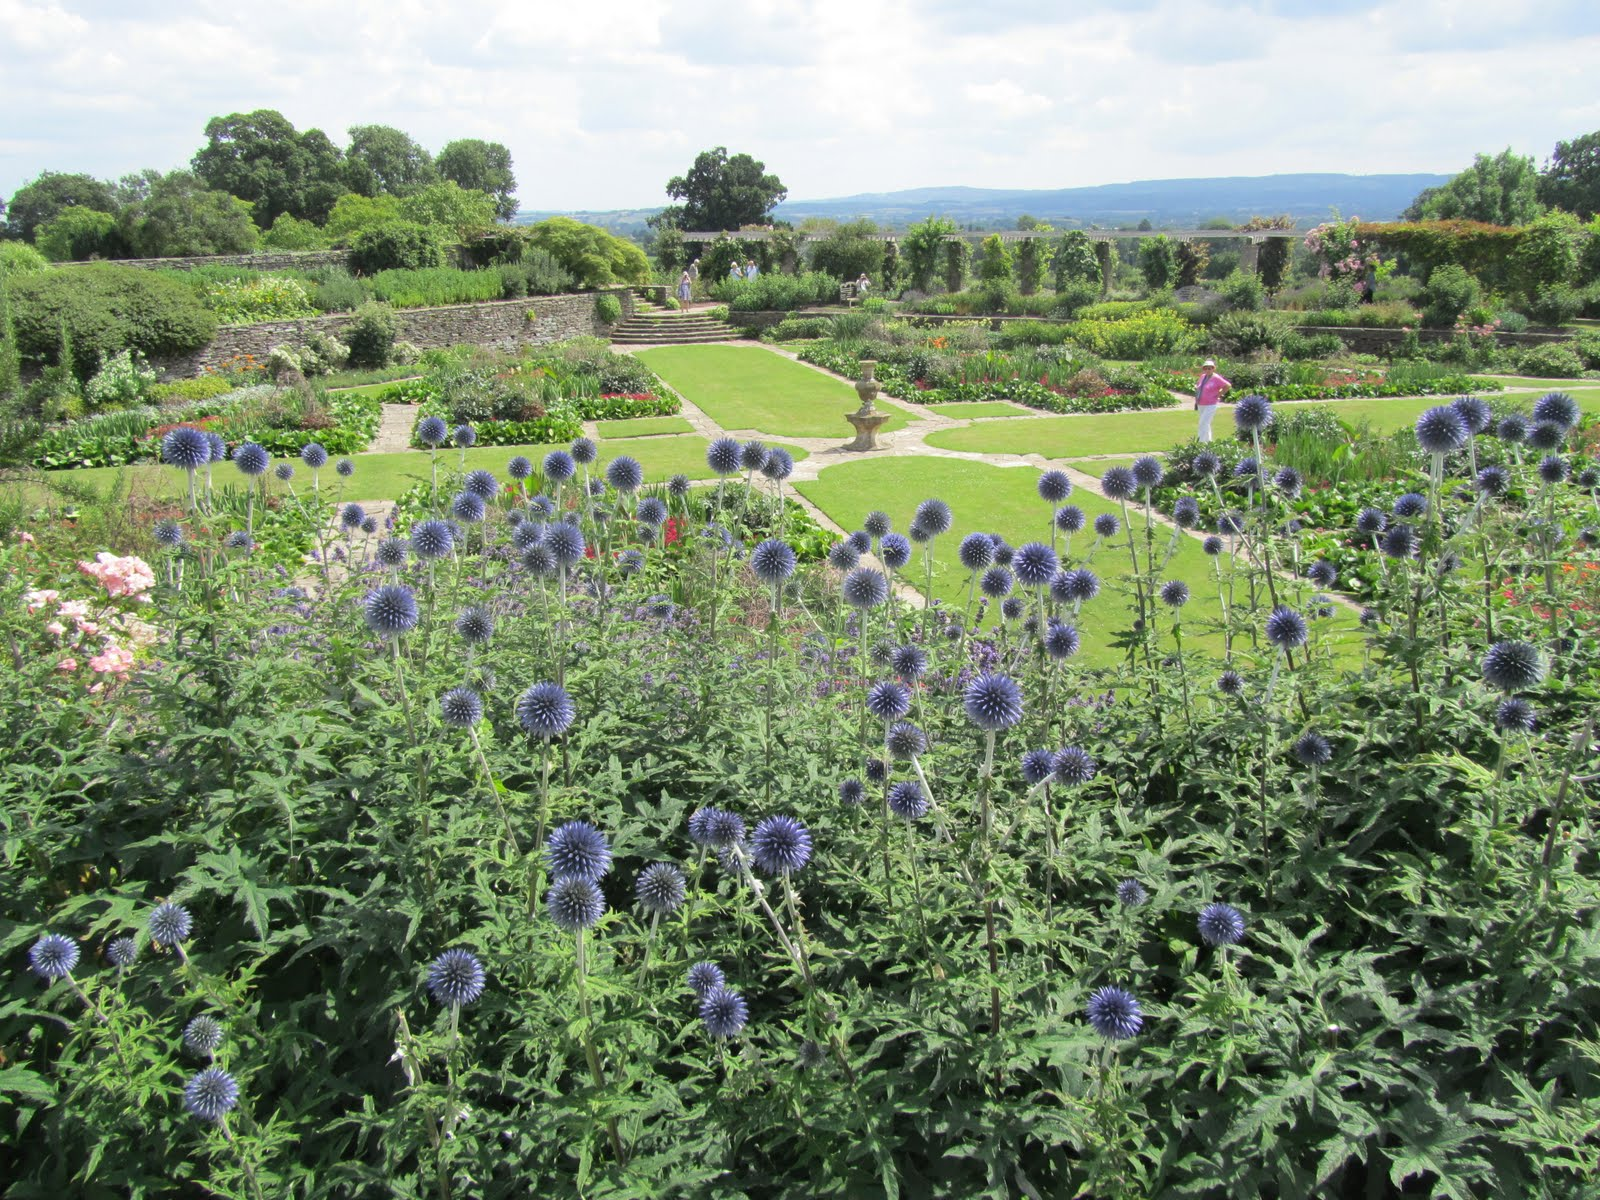 1000 images about garden inspirations from gertrude jekyll on pinterest for Gertrude jekyll gardens to visit